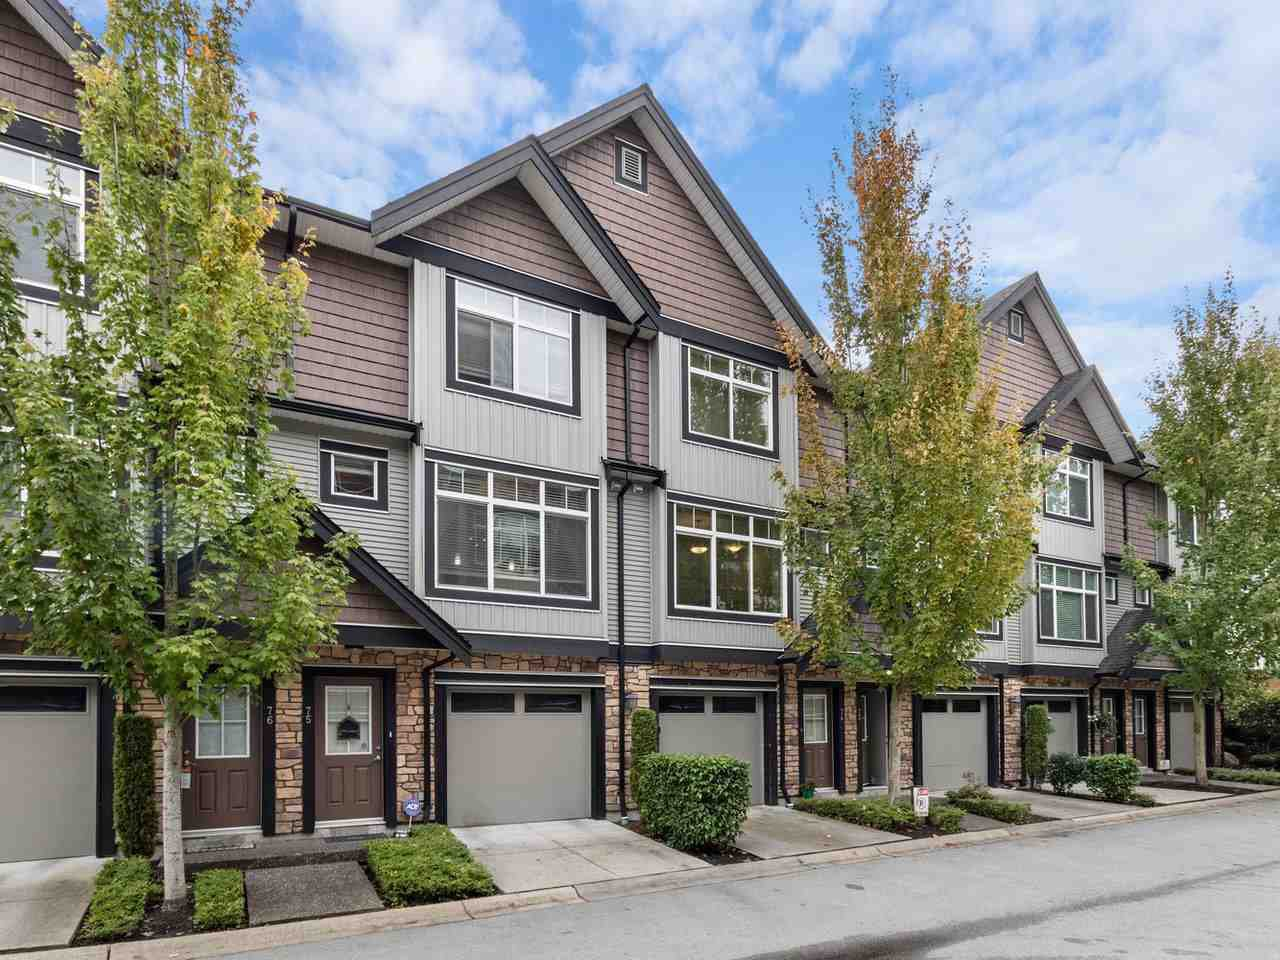 """Main Photo: 74 6299 144 Street in Surrey: Sullivan Station Townhouse for sale in """"ALTURA"""" : MLS®# R2518247"""